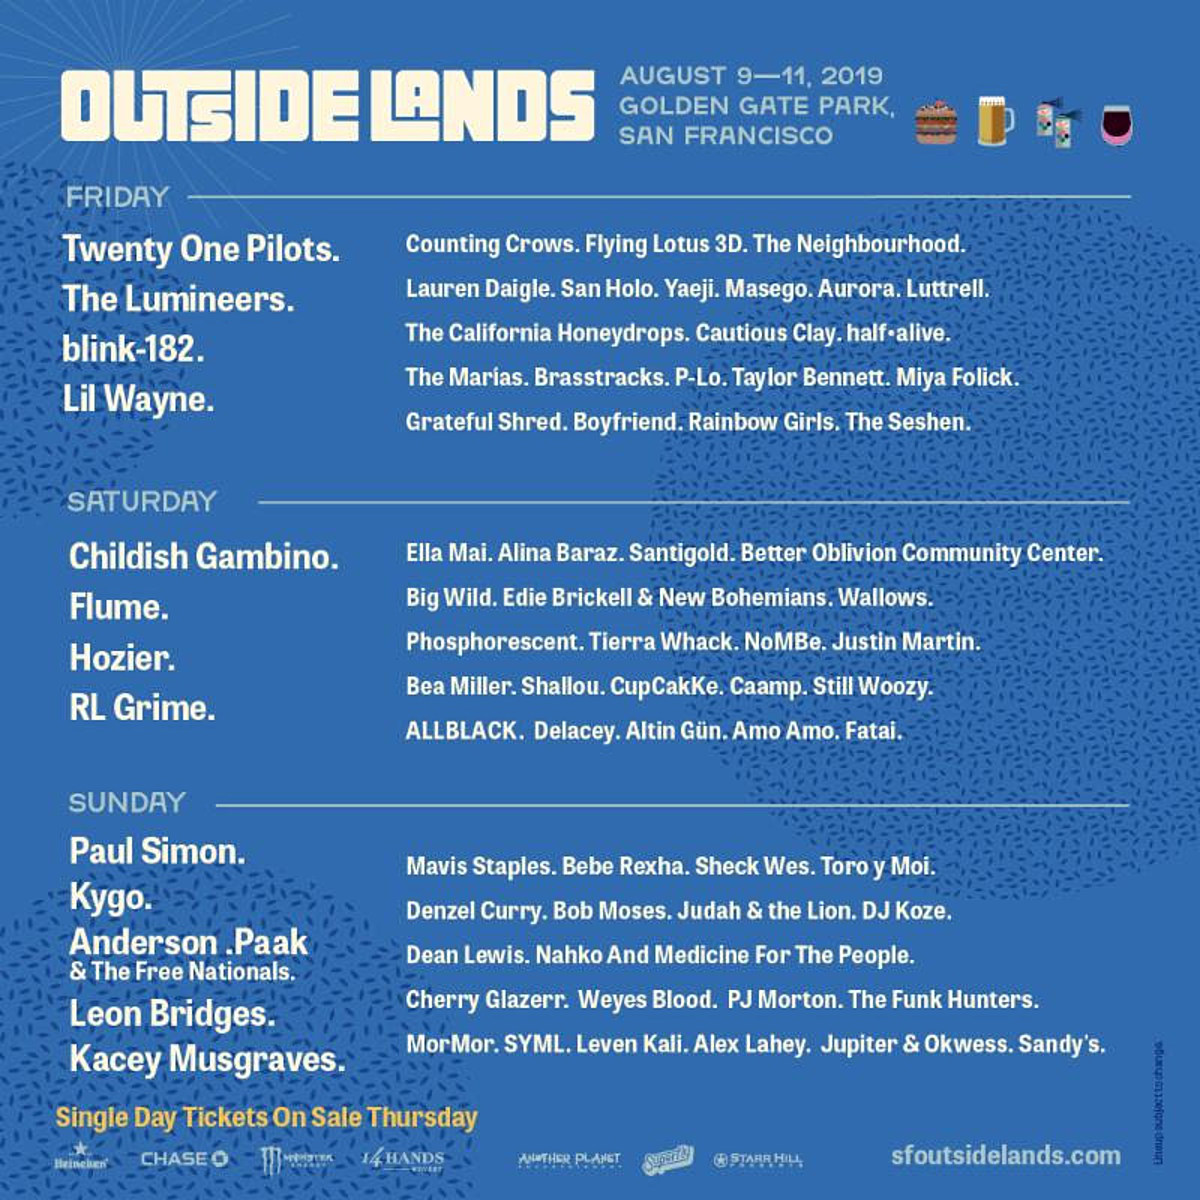 Outside Lands 2019 reveals daily lineups single-day ticket info